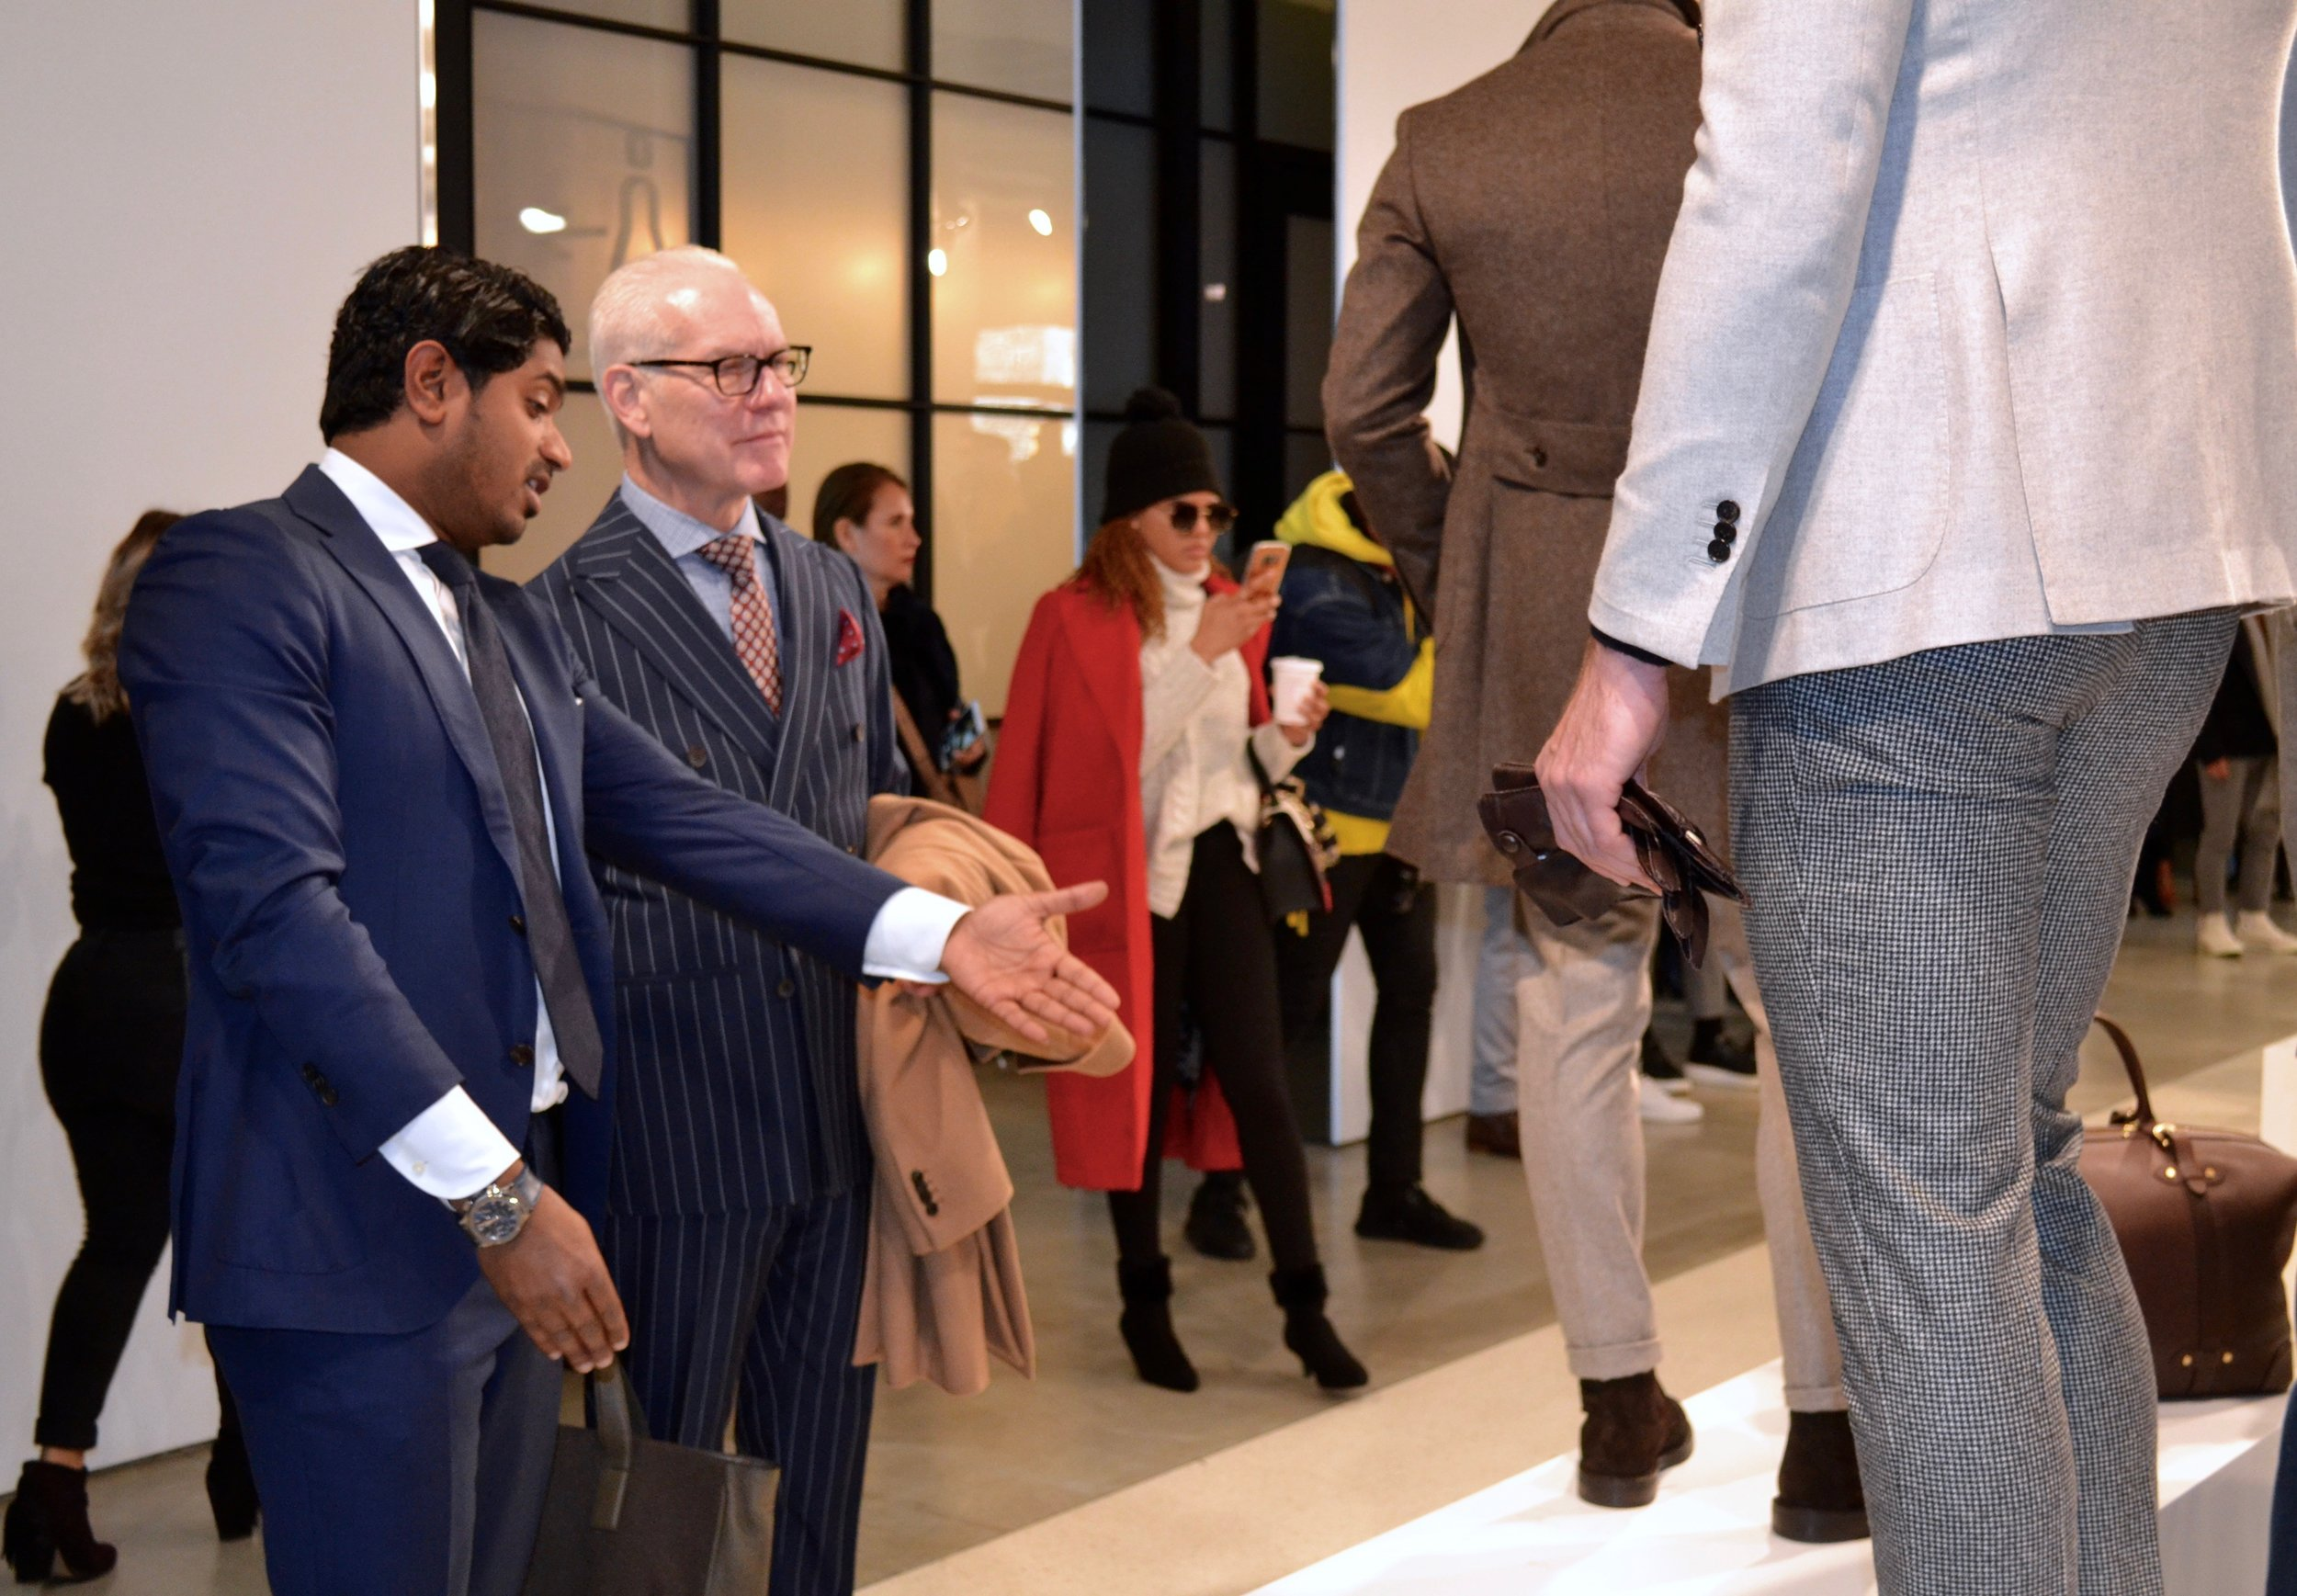 Tim Gunn viewing the Fall/Winter 2018 collection.